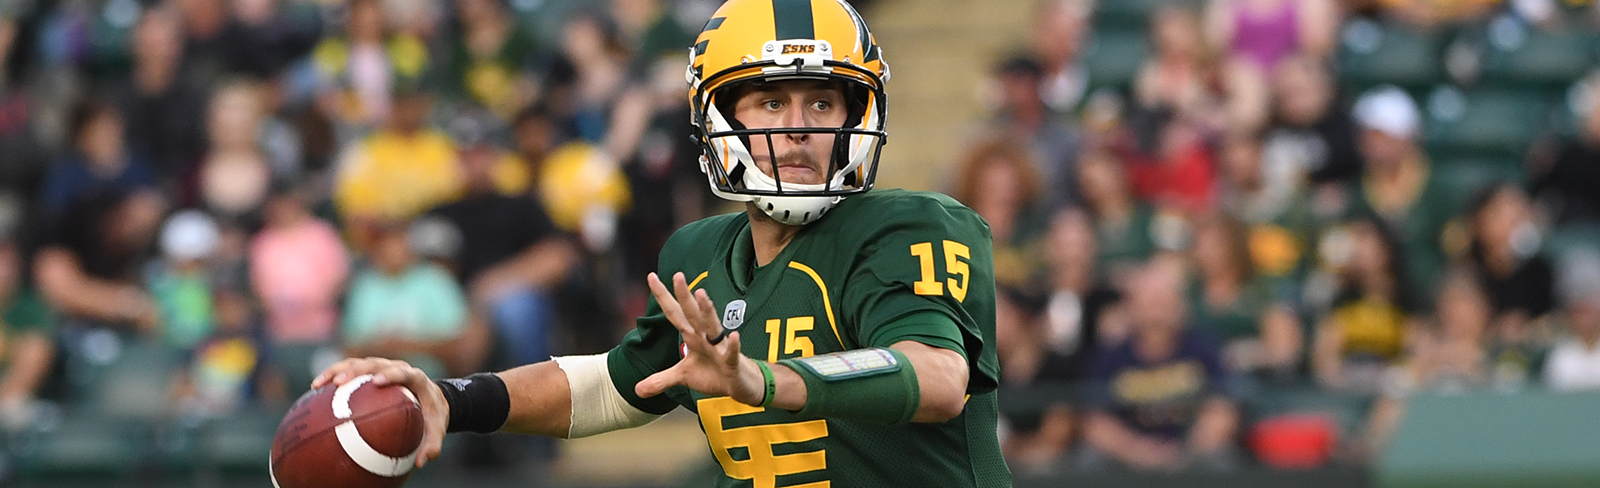 'You've got to be ready to go in' – Kilgore On Role Of Backup QBs - Edmonton Eskimos